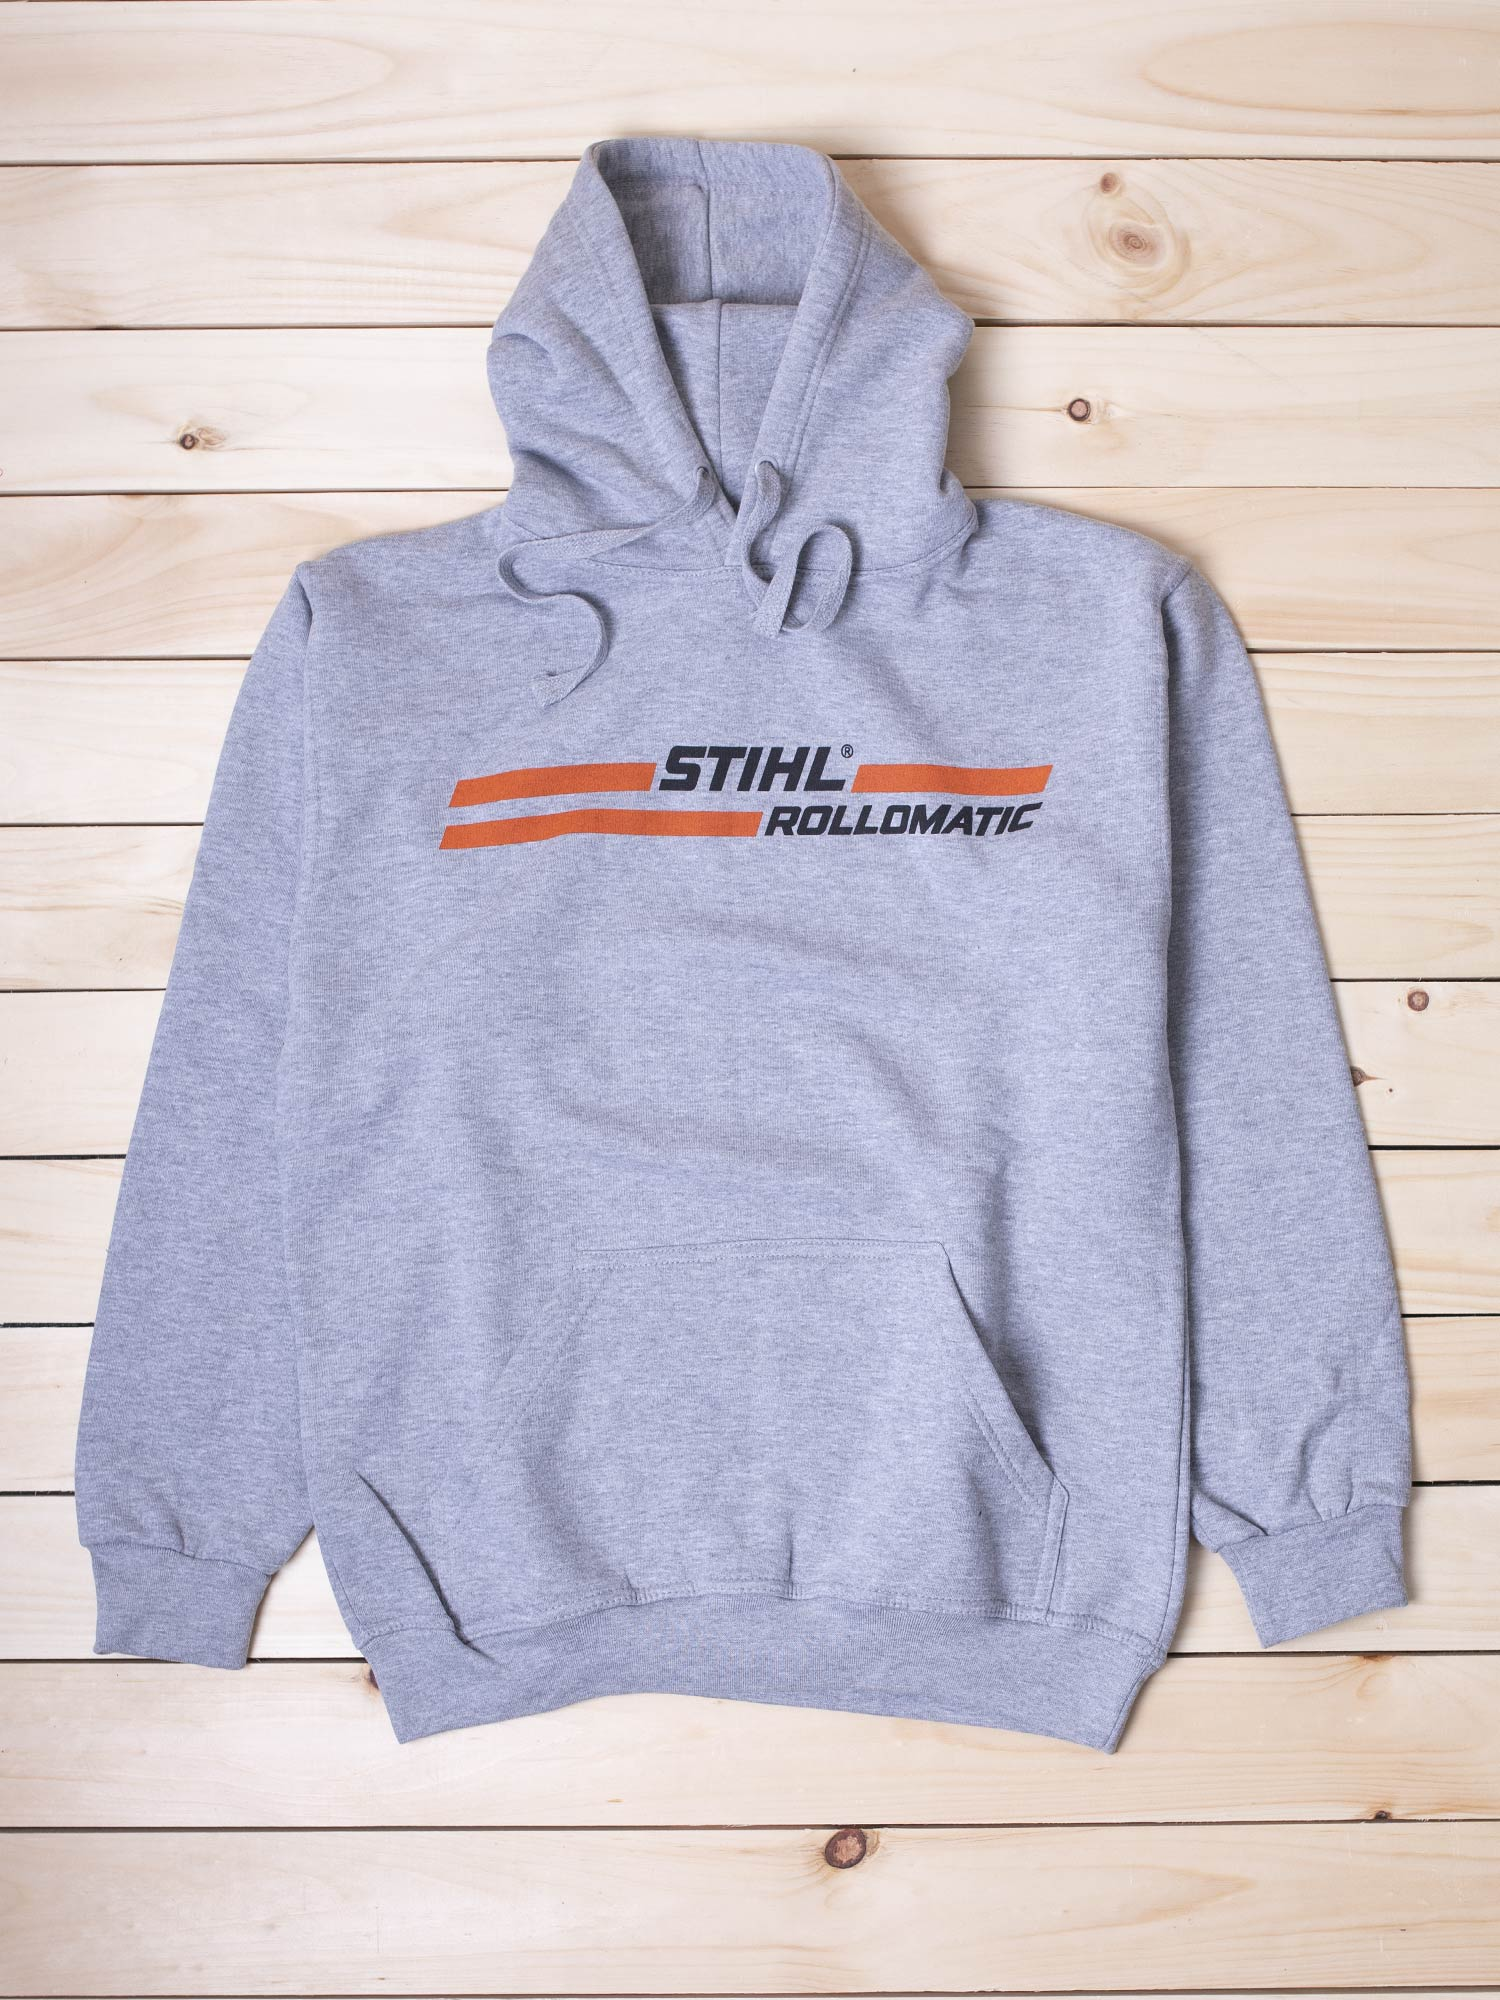 STIHL Rollomatic Hooded Sweatshirt